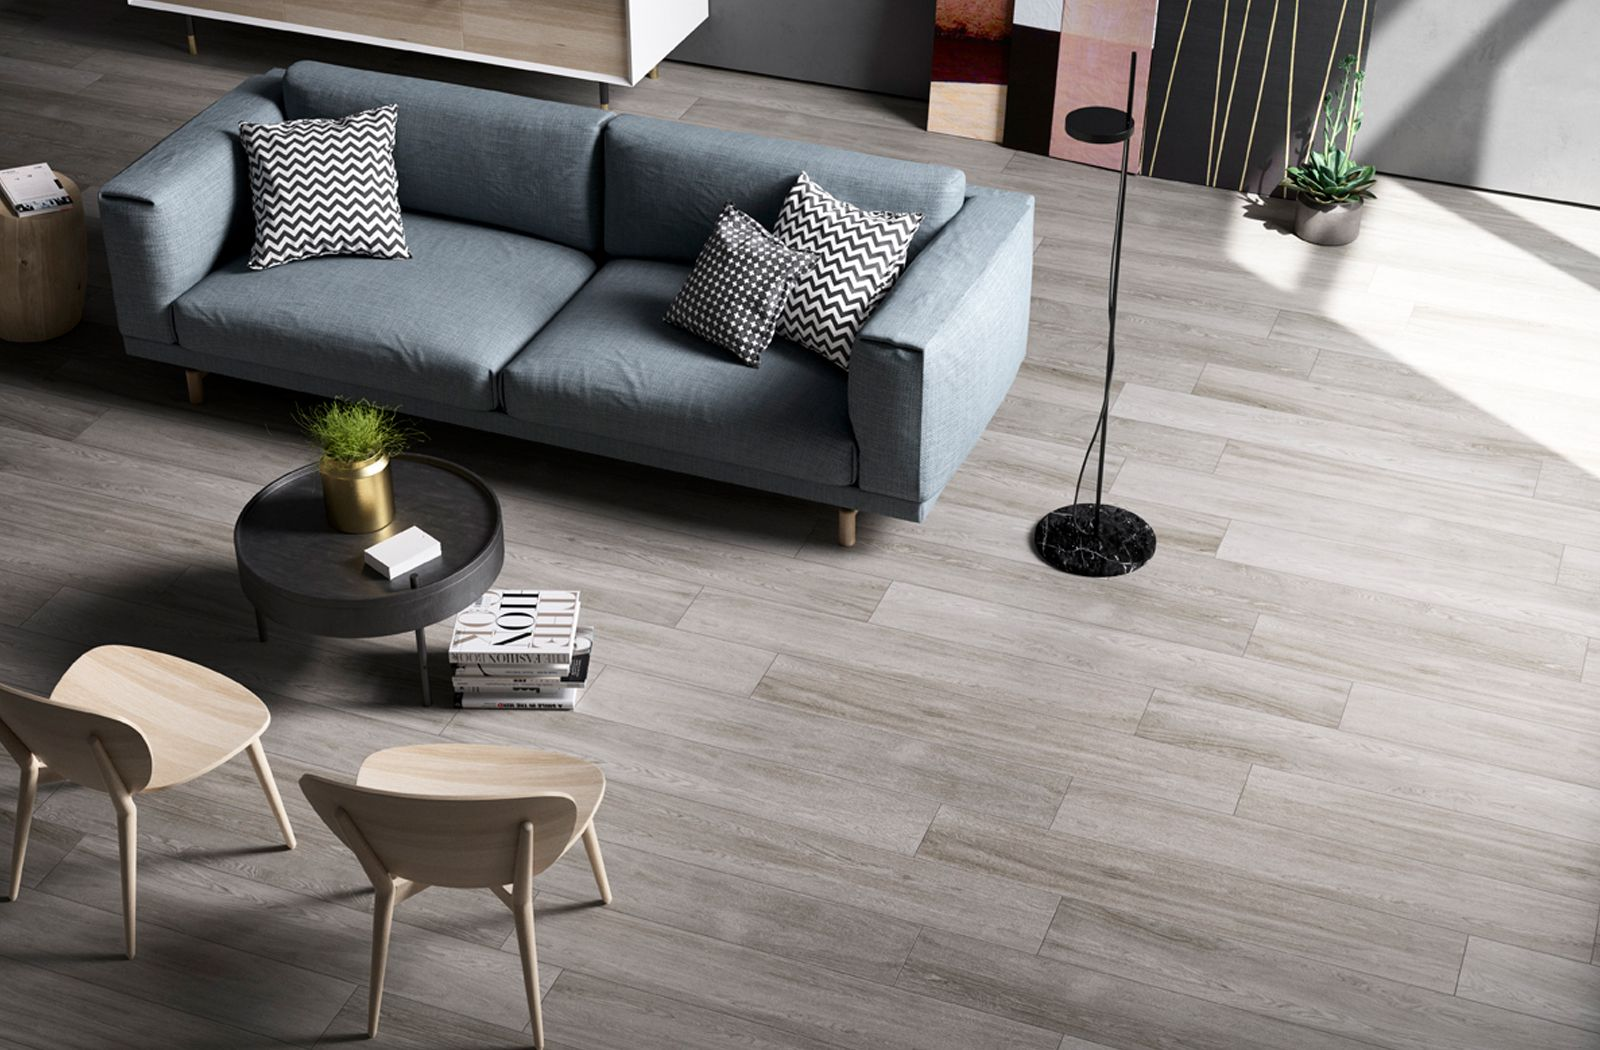 Modern Scandinavian decor idea with Q-Style tile from Cooperativa Ceramica  d'Imola.